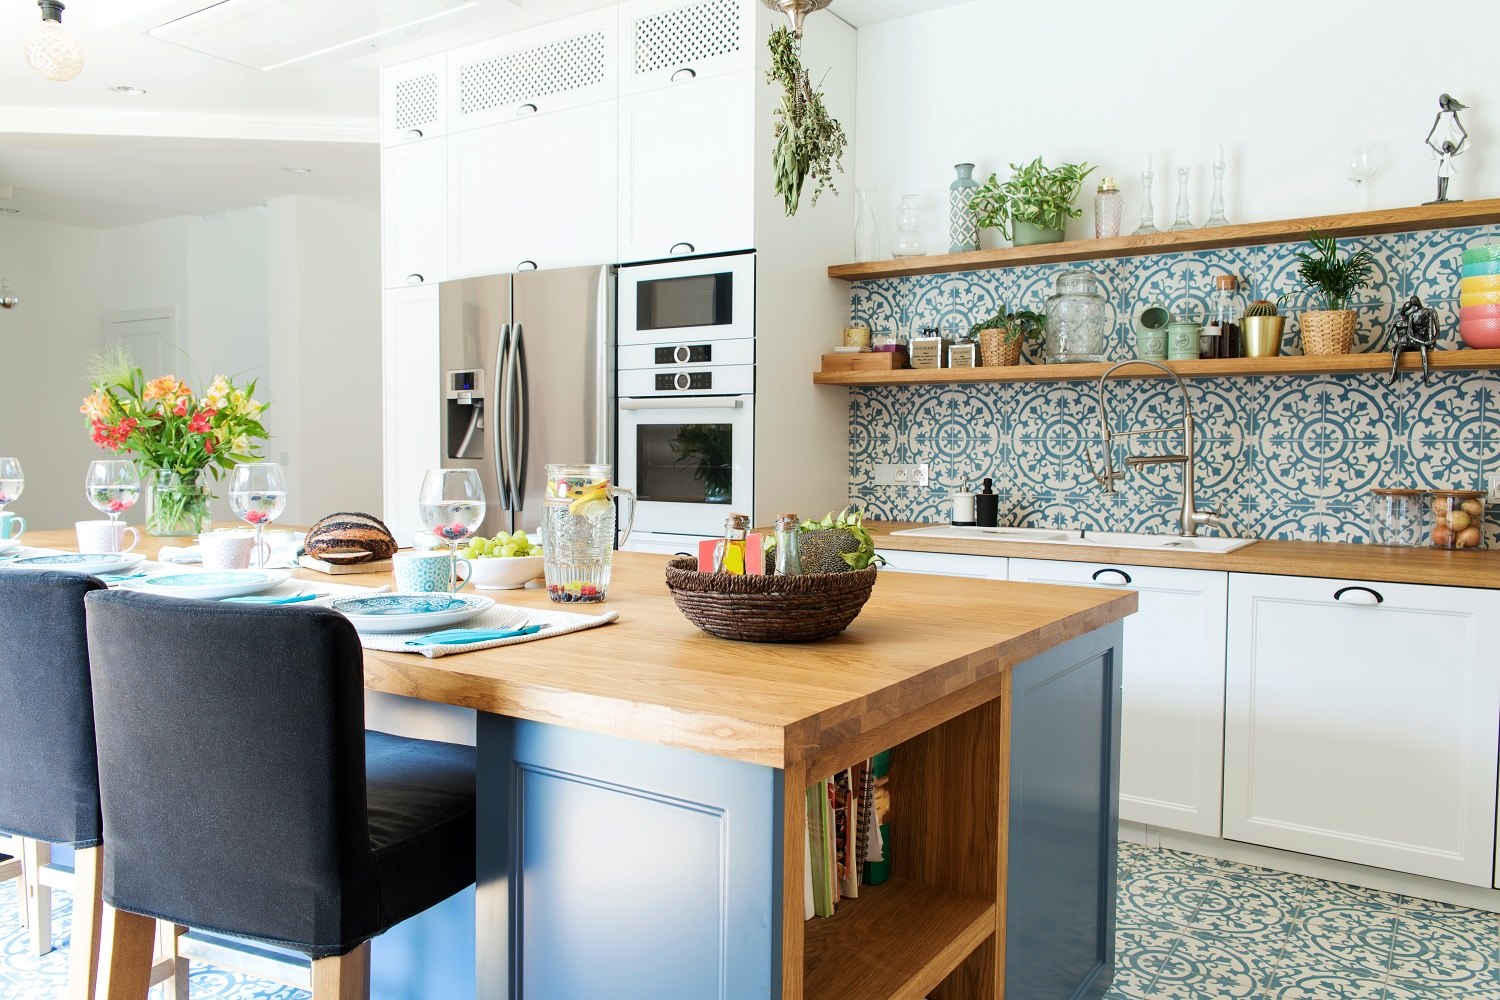 Bright summer kitchen design